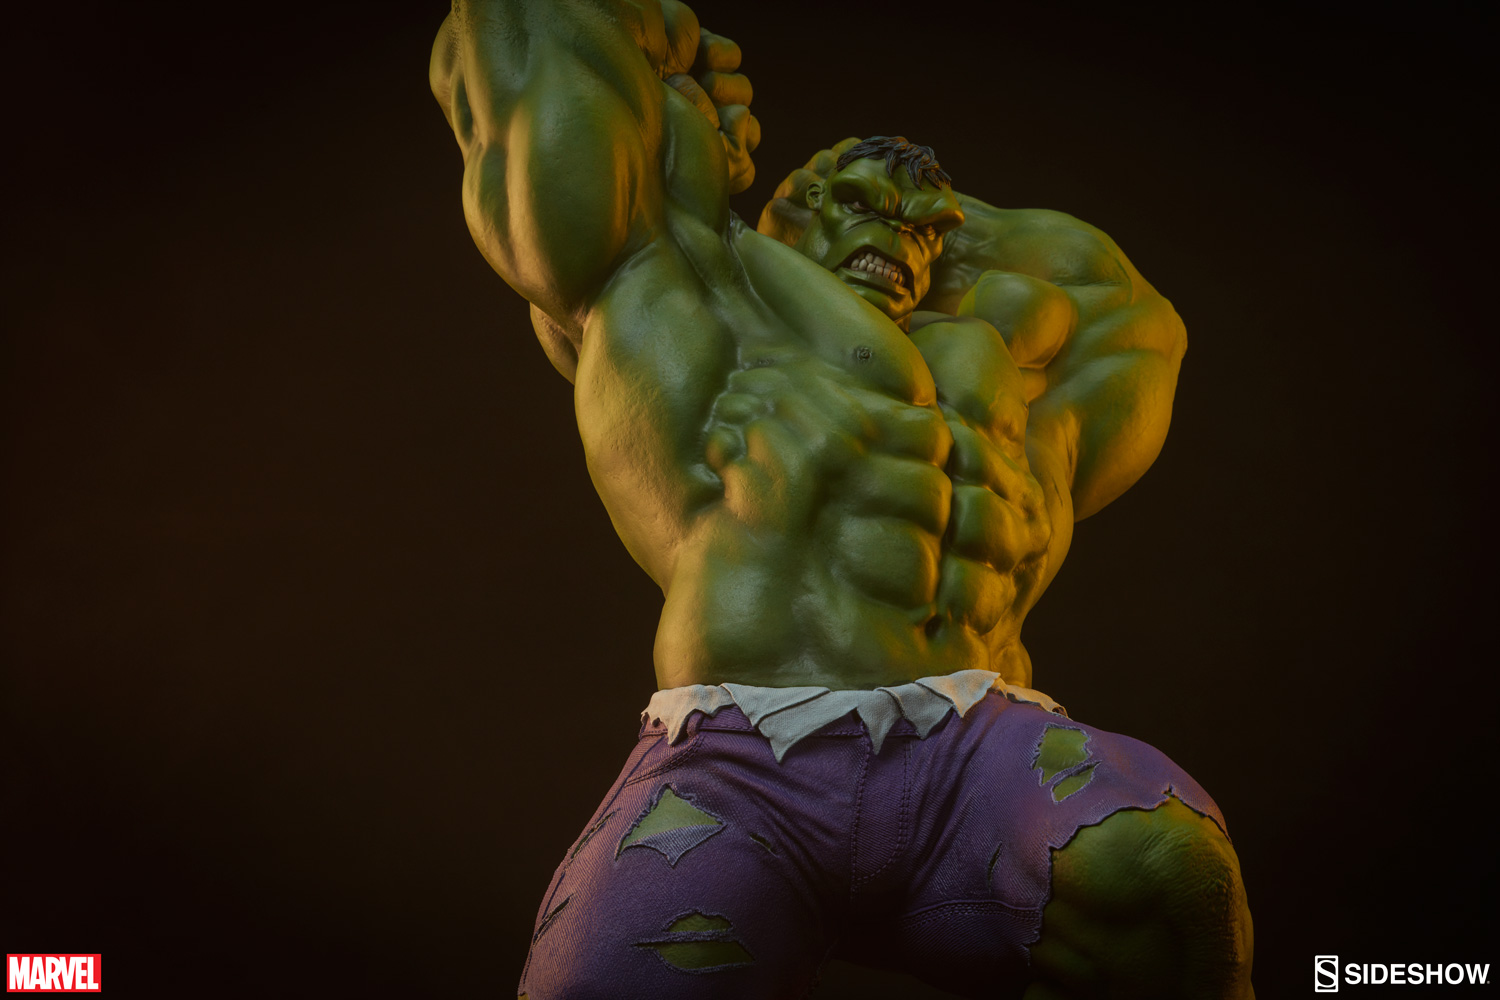 Sideshow Collectibles The Incredible Hulk Statue Pre-Orders